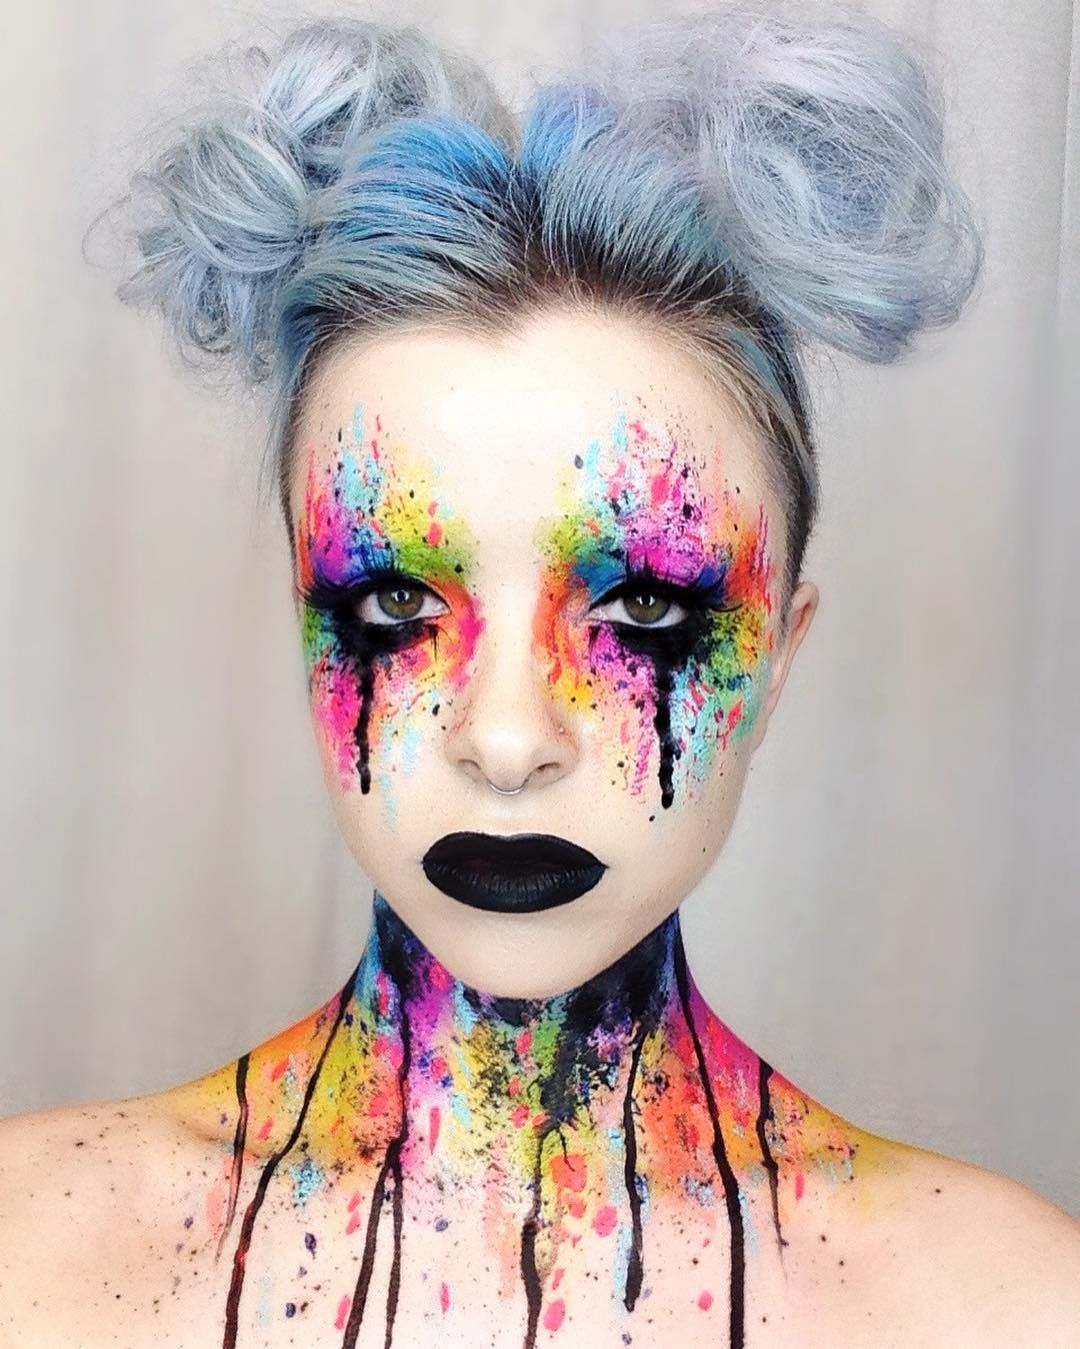 50 Terrifyingly Creative Halloween Makeup Ideas To Try picture